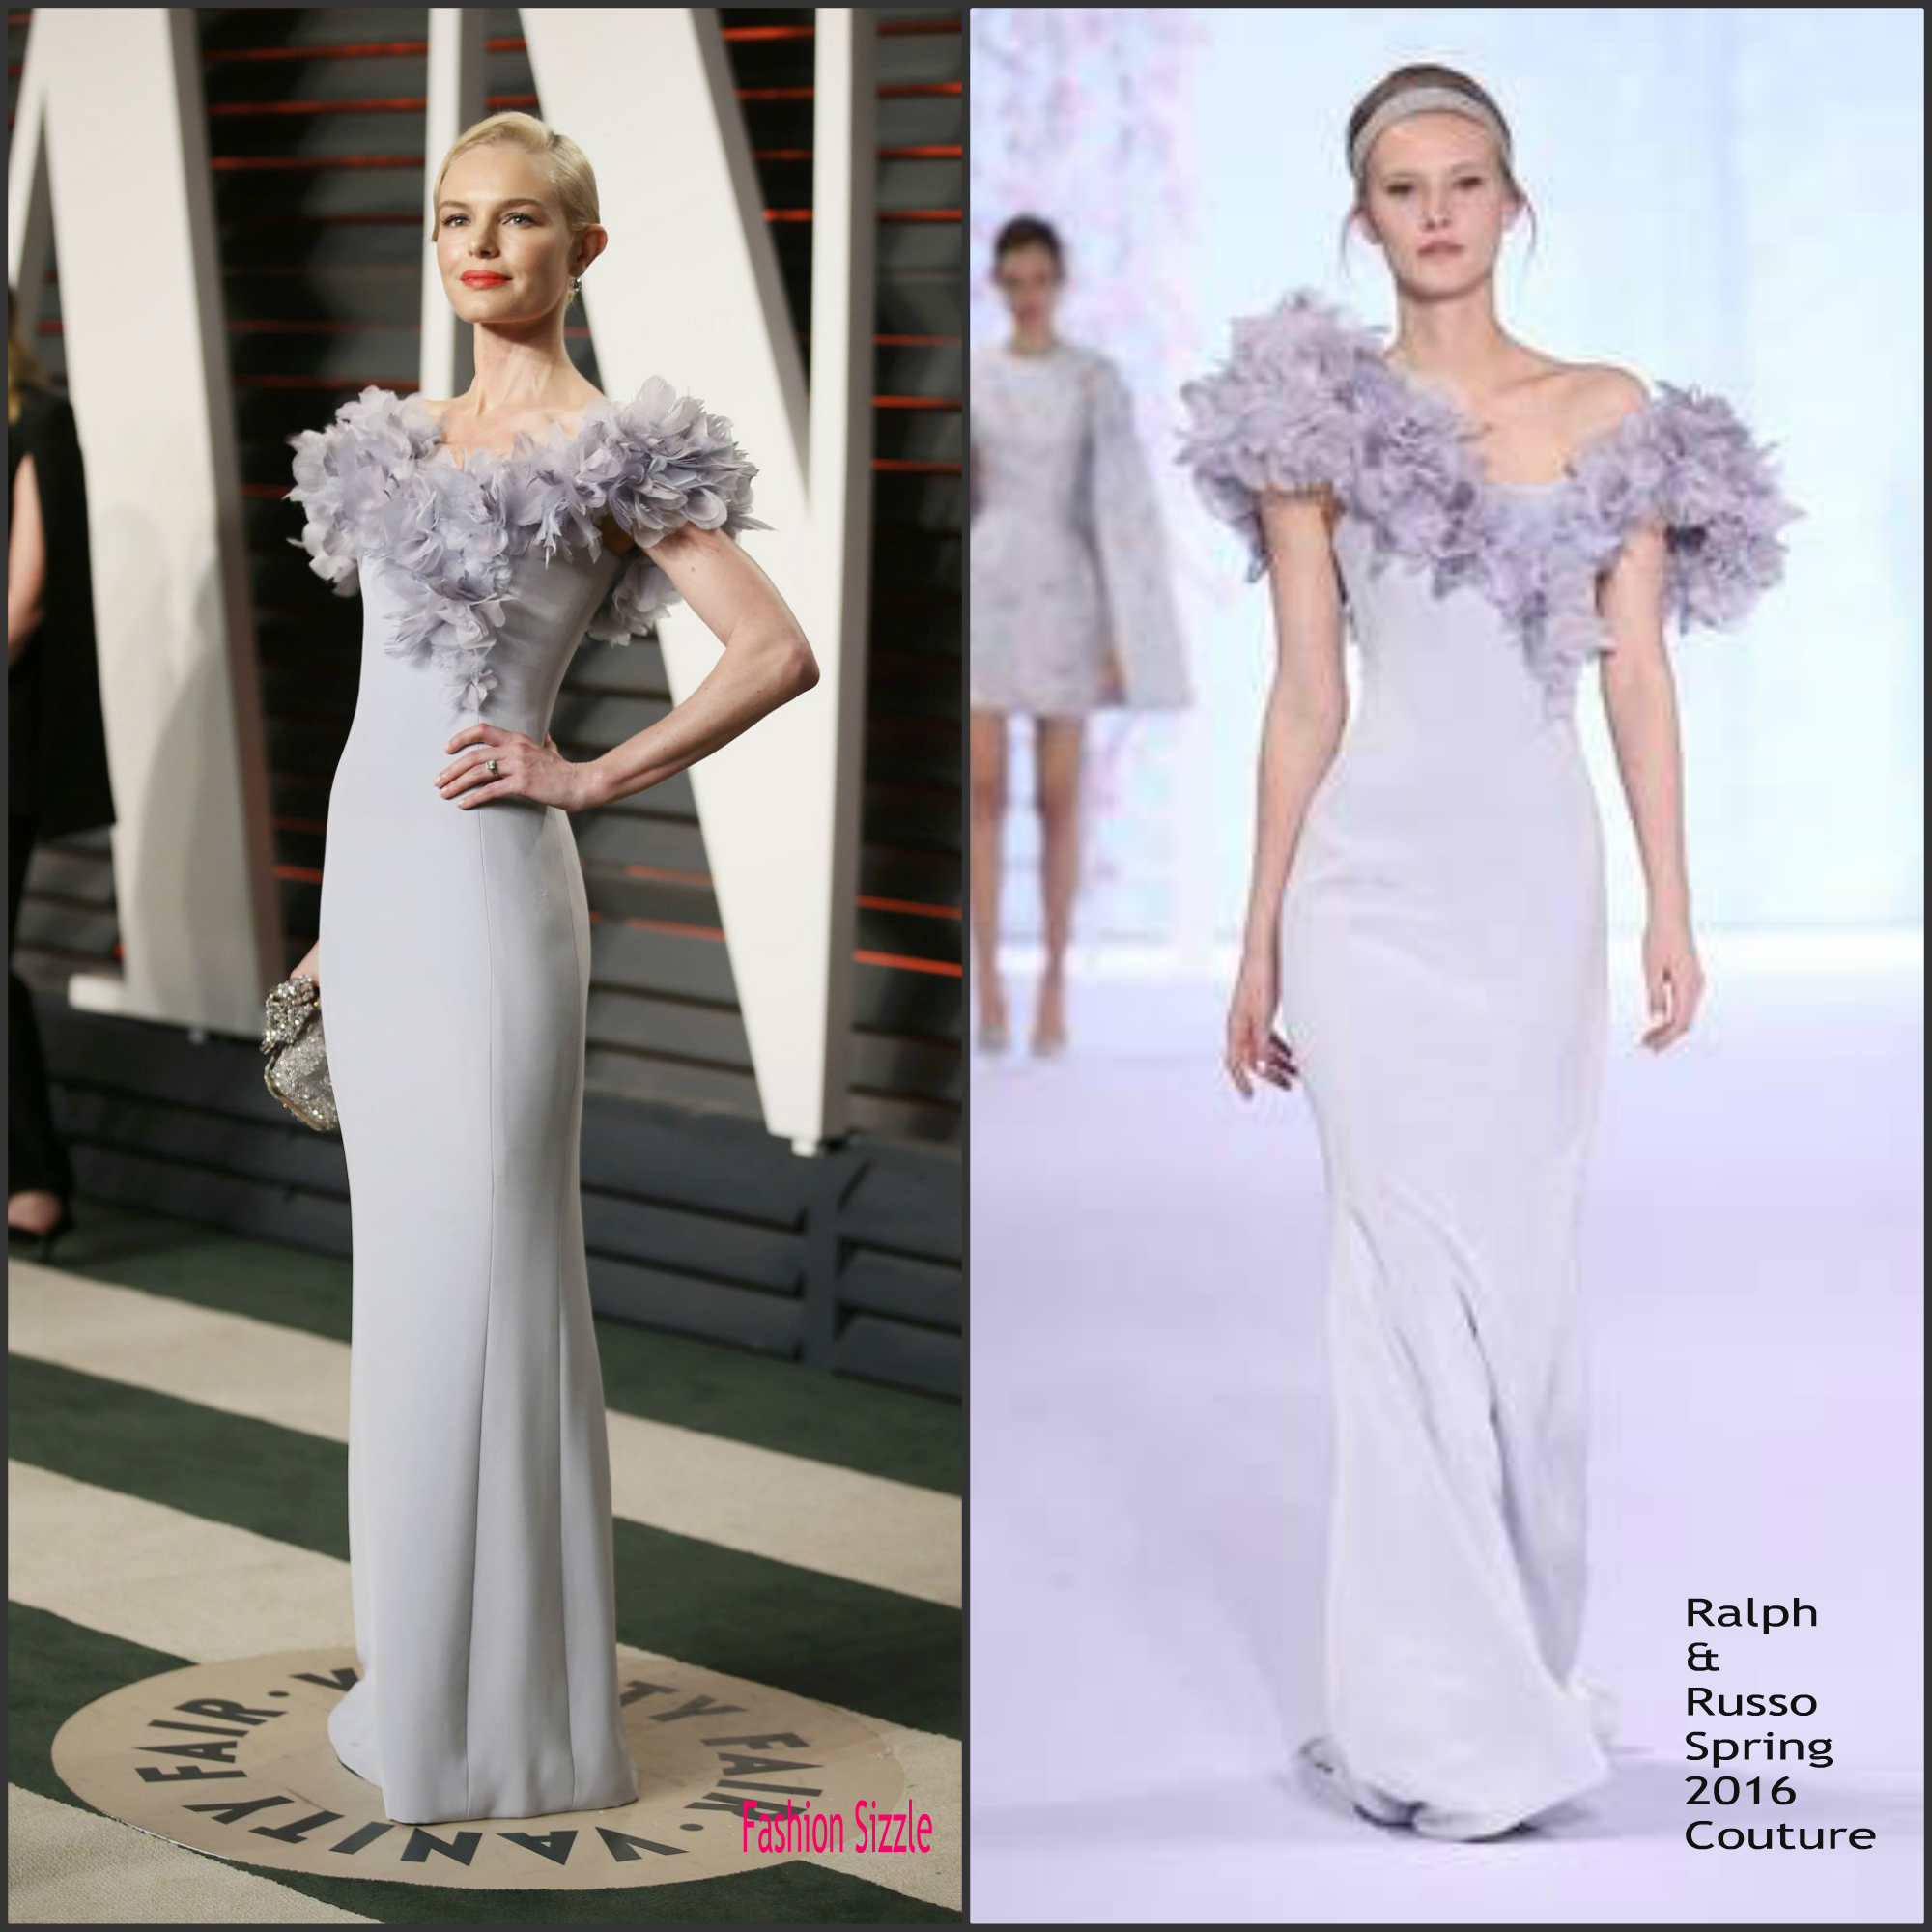 kate-bosworth-in-ralph-russo-couture-2016-vanity-fair-oscar-party